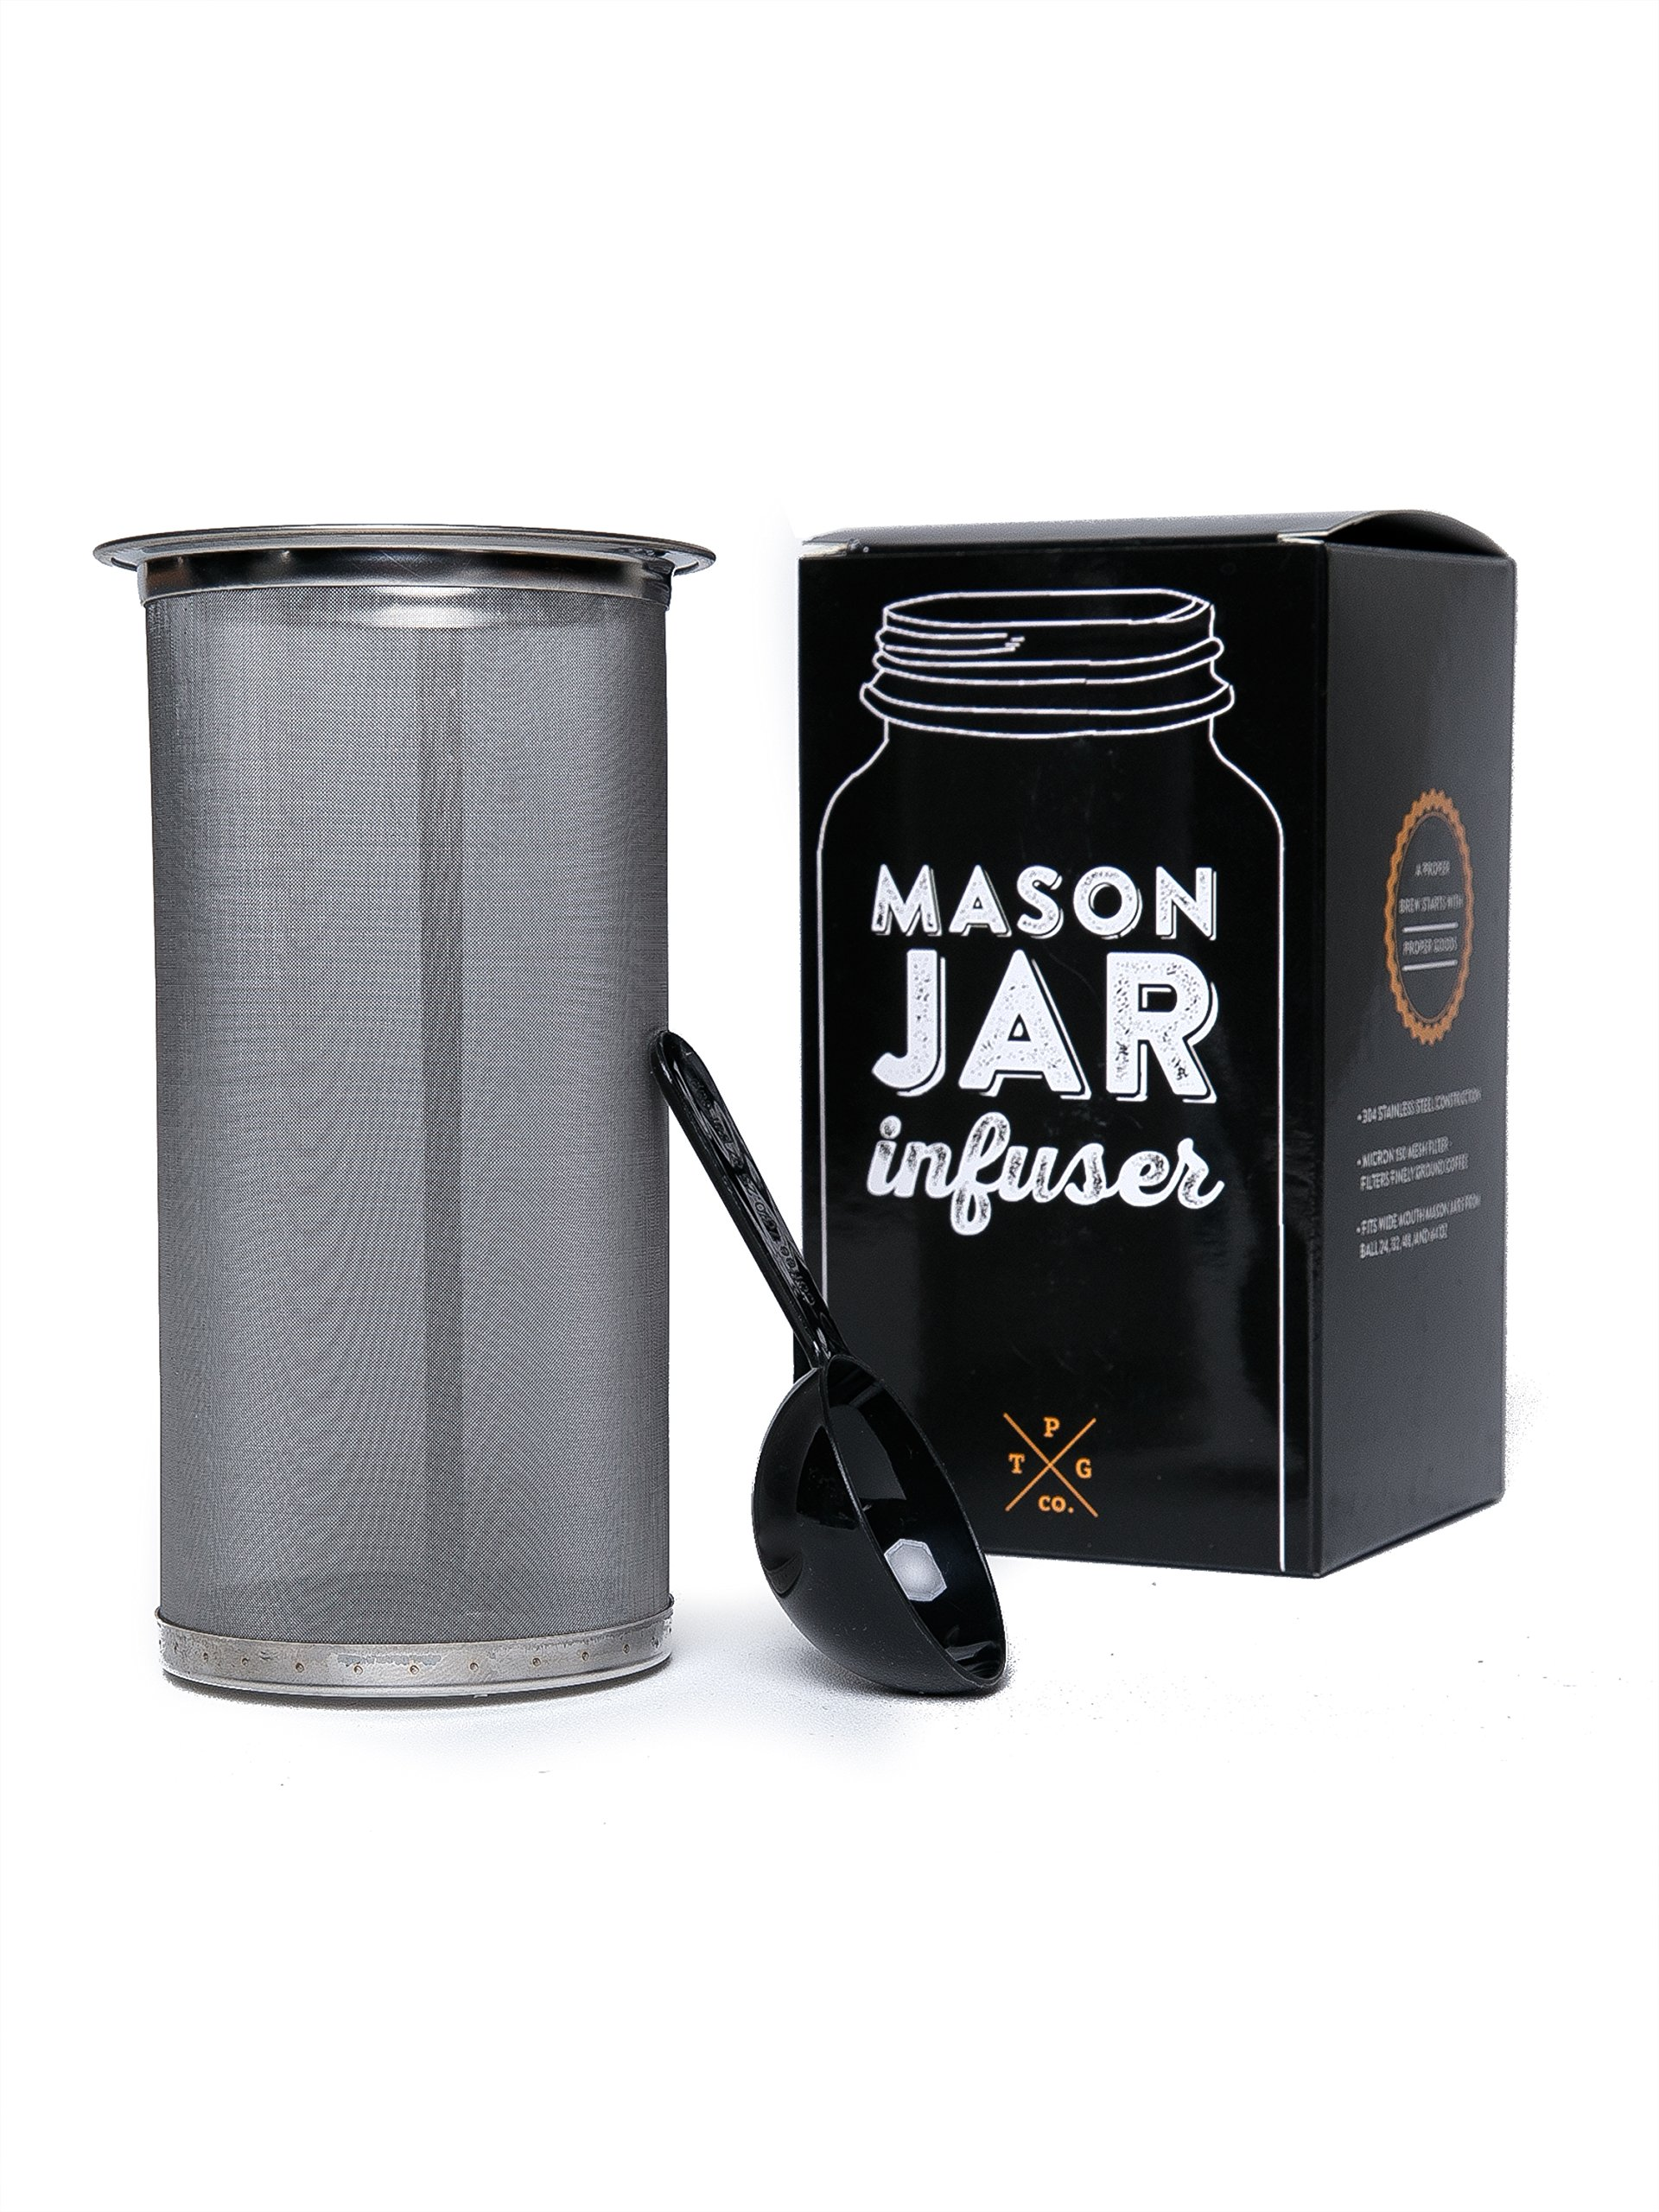 Mason Jar Infuser Filter Fits All Wide Mouth Jar - Cold Brew Coffee Tea Maker At Home - Free Spoon - 150 Micron Mesh - 304 Stainless